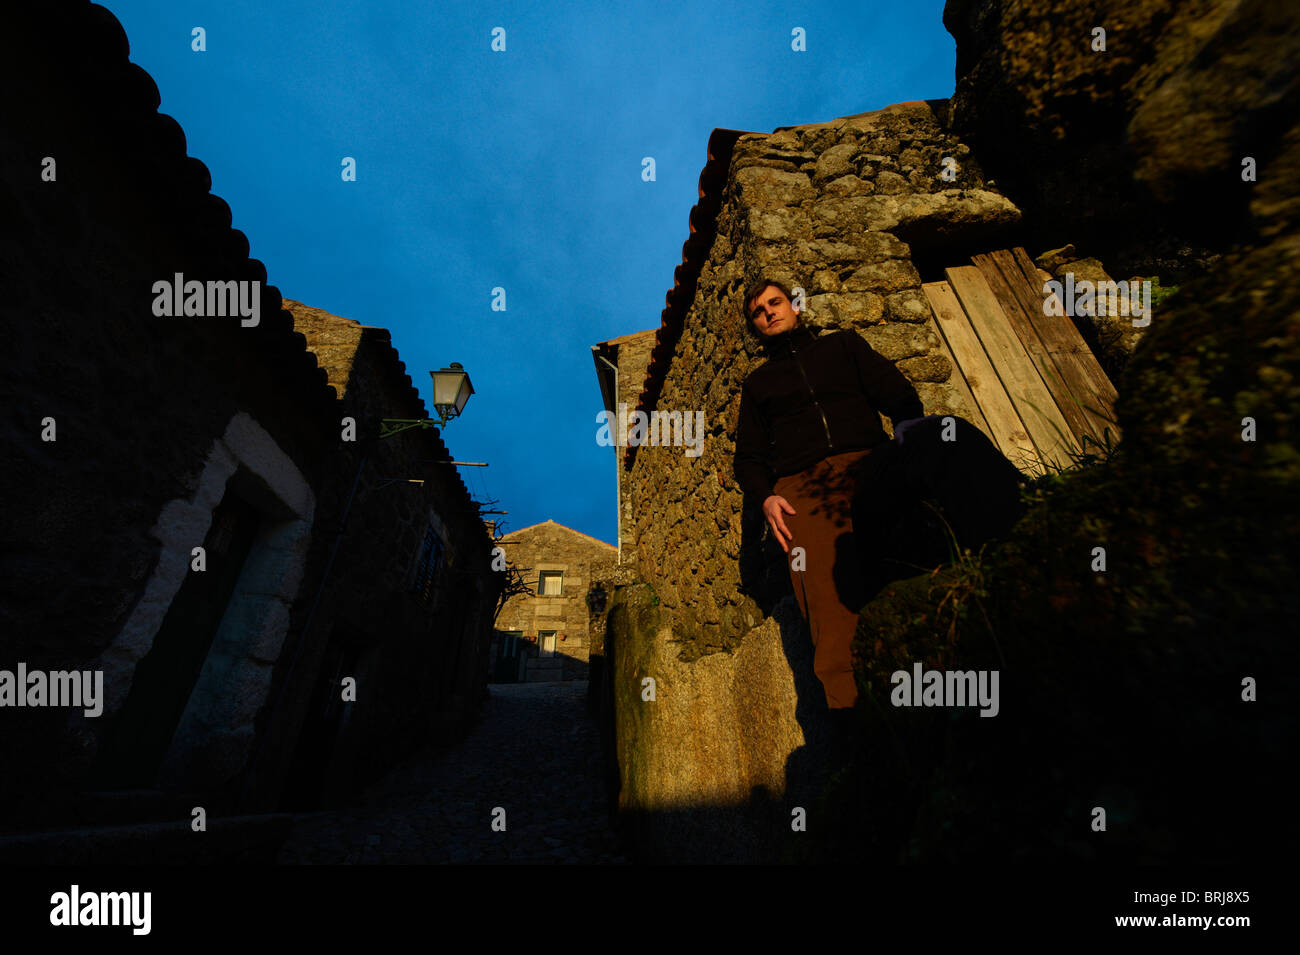 Man in front of traditional stone houses in the village of Monsanto, Portugal - Stock Image